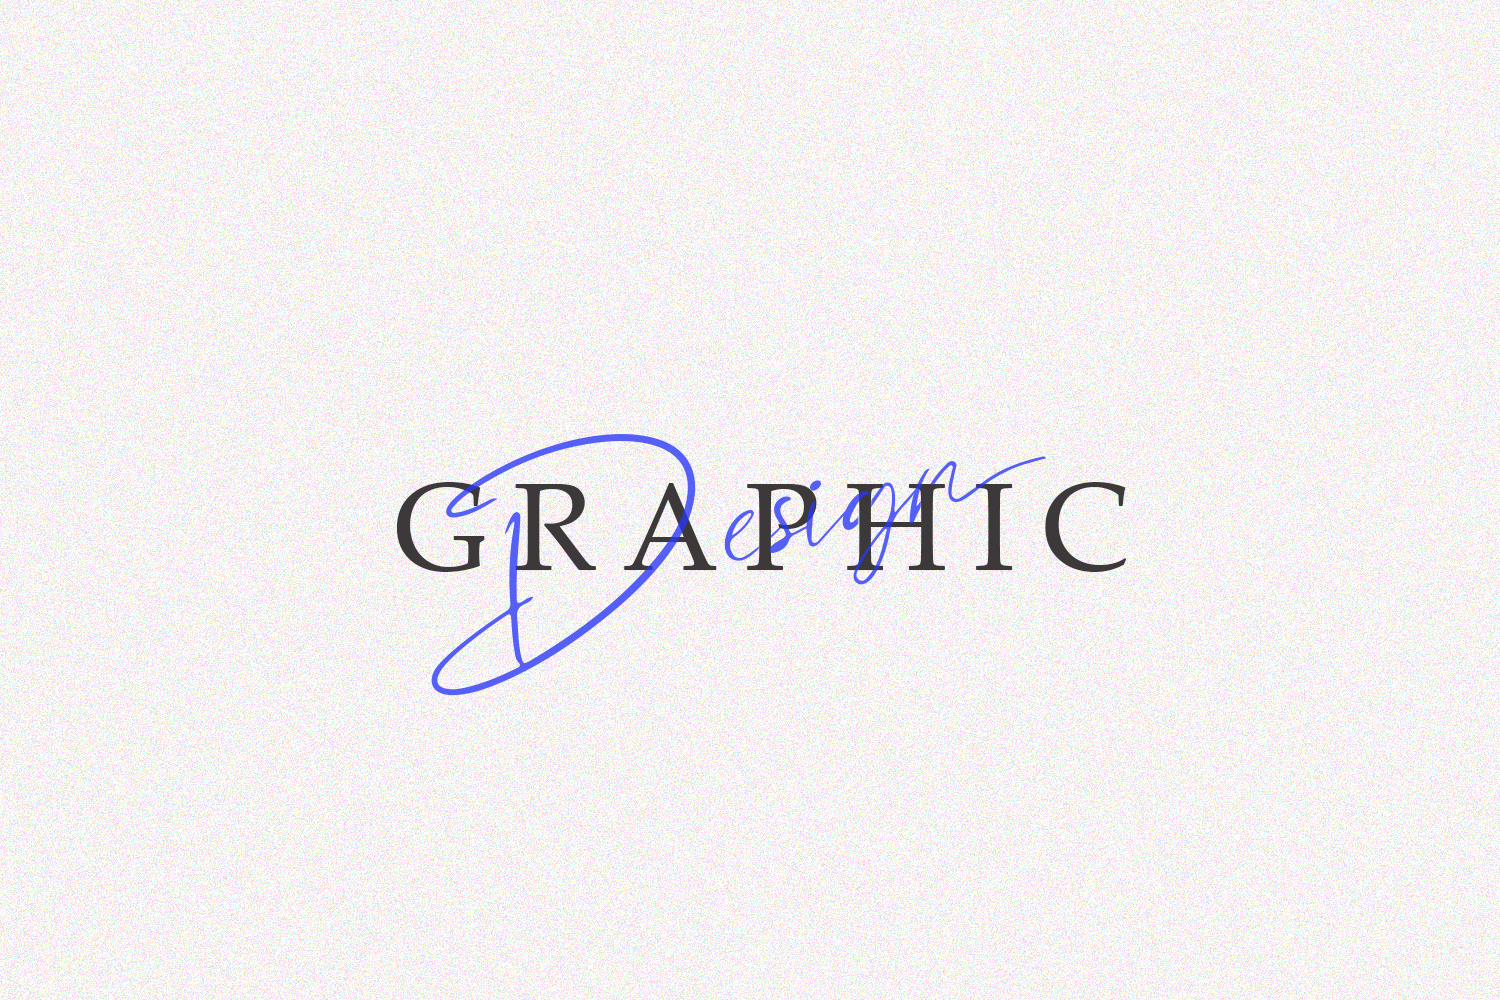 North Little Signature Font example image 3